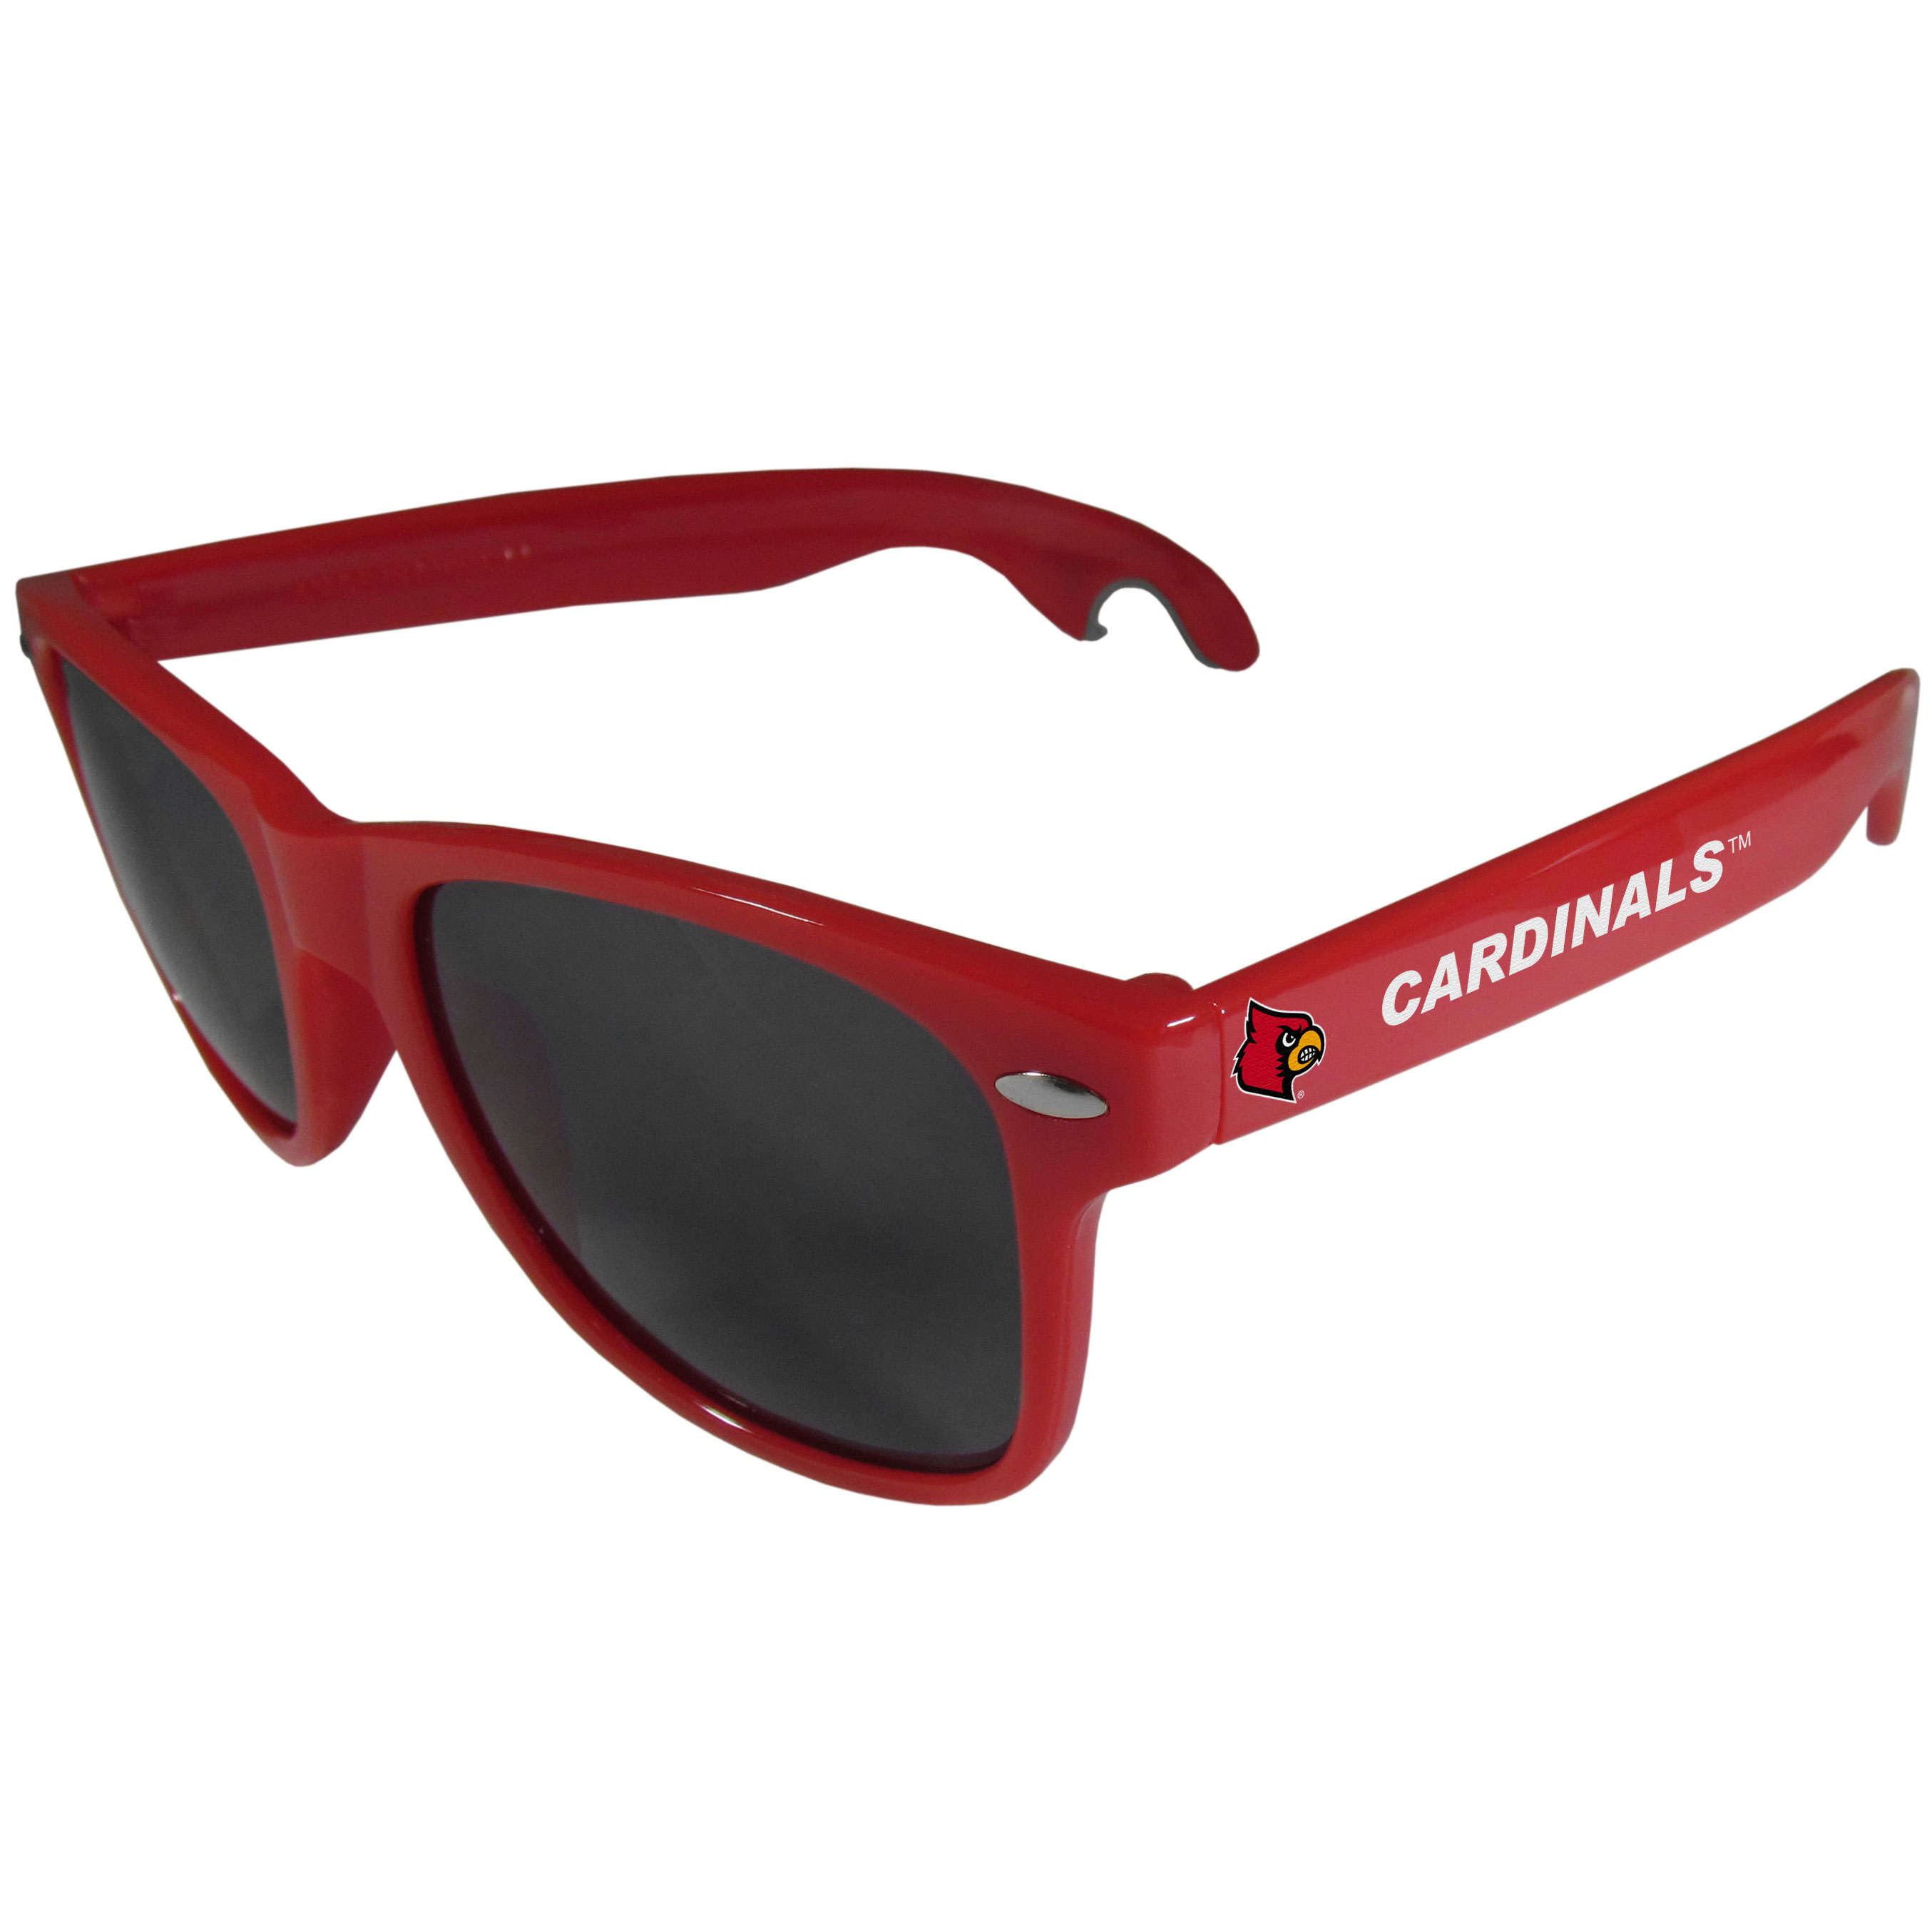 Louisville Cardinals Beachfarer Bottle Opener Sunglasses, Red - Seriously, these sunglasses open bottles! Keep the party going with these amazing Louisville Cardinals bottle opener sunglasses. The stylish retro frames feature team designs on the arms and functional bottle openers on the end of the arms. Whether you are at the beach or having a backyard BBQ on game day, these shades will keep your eyes protected with 100% UVA/UVB protection and keep you hydrated with the handy bottle opener arms.